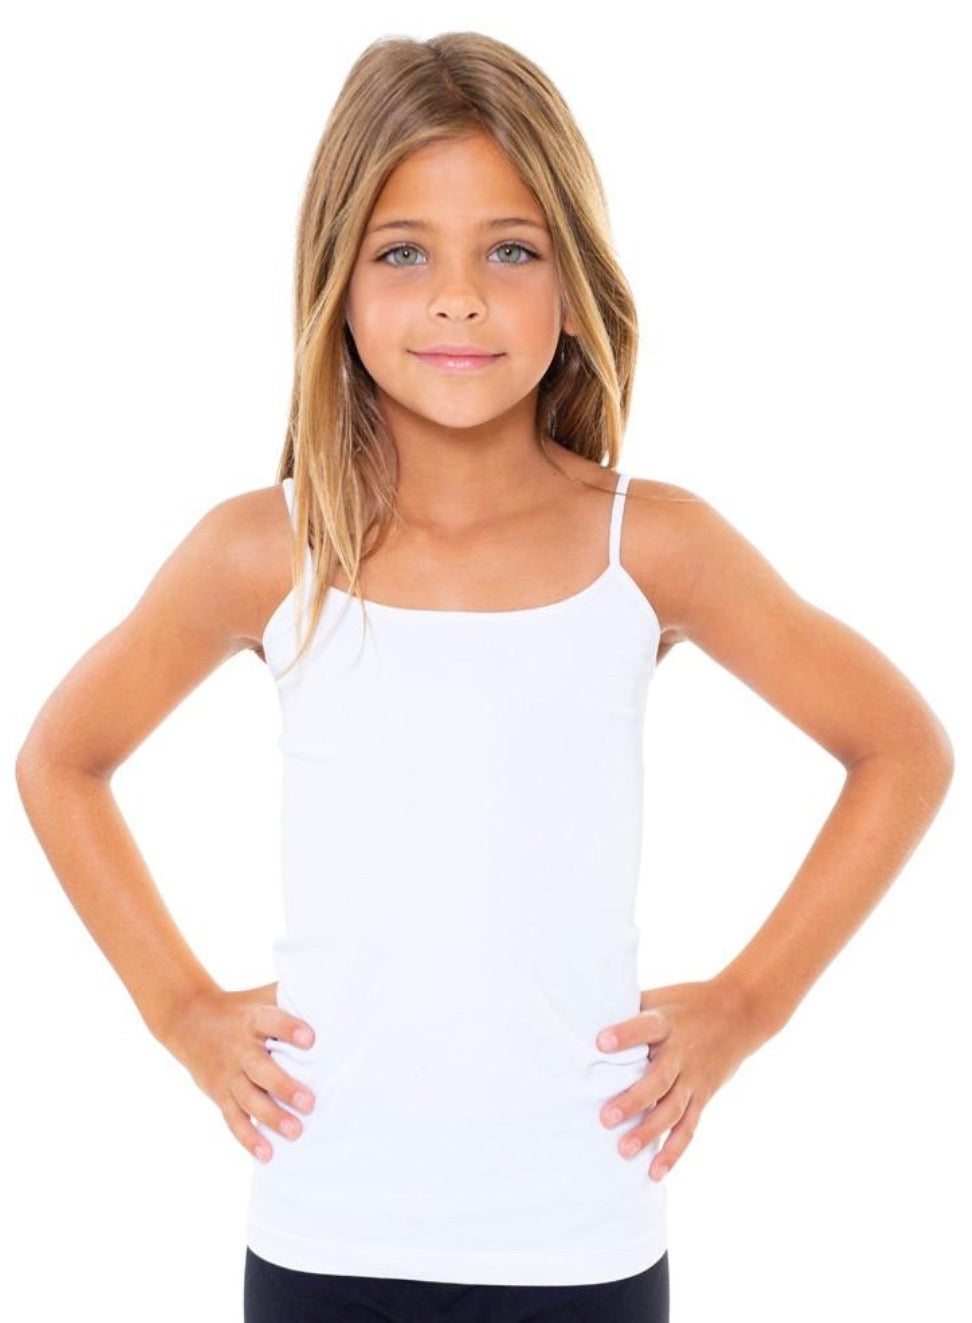 Malibu Sugar - Solid Full Cami for Tweens White